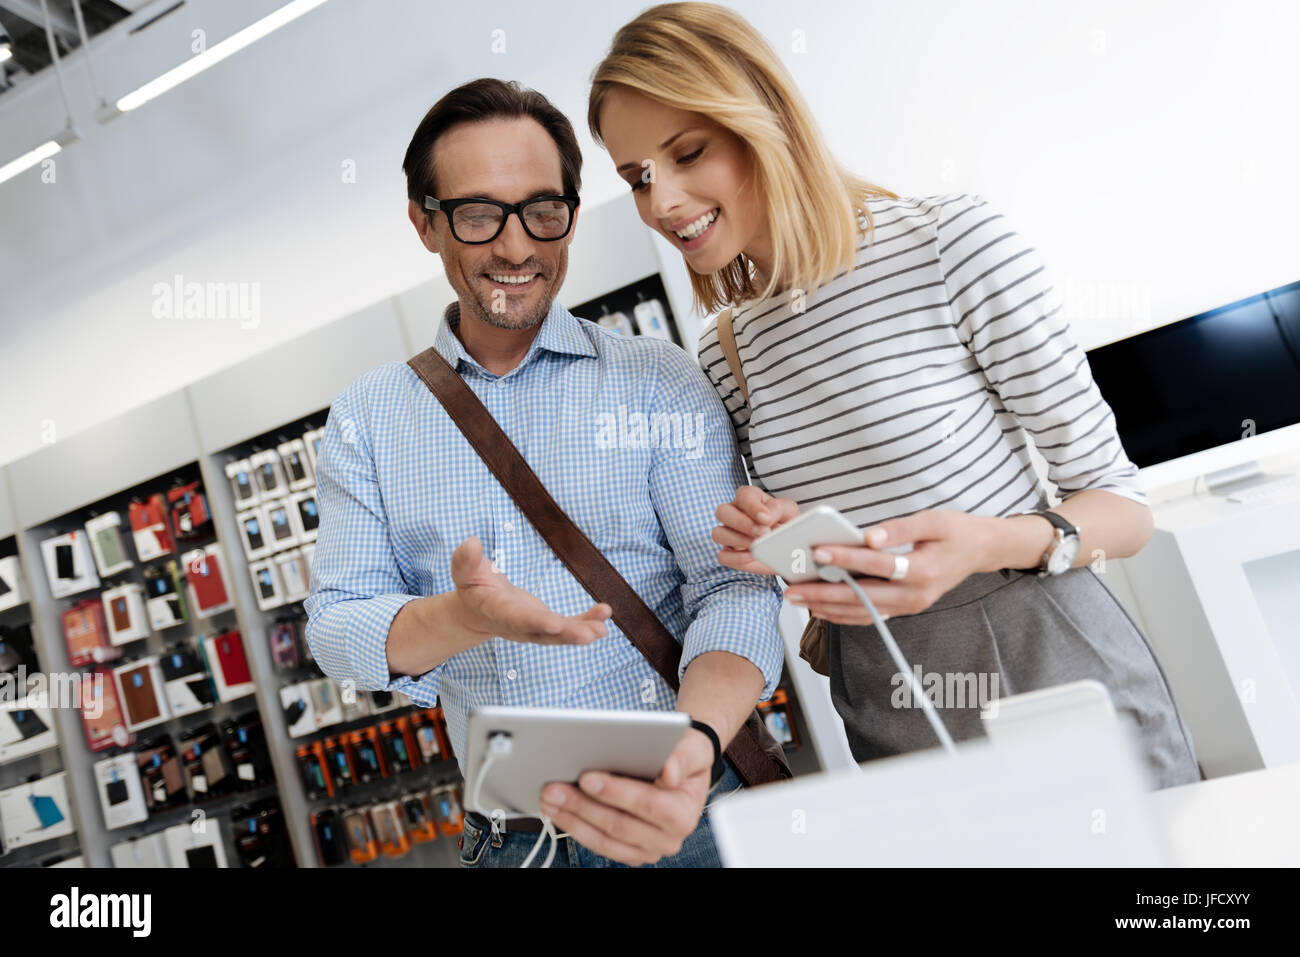 Check this out. Smiling man and woman wearing casual attire standing at a store display and trying out technological - Stock Image